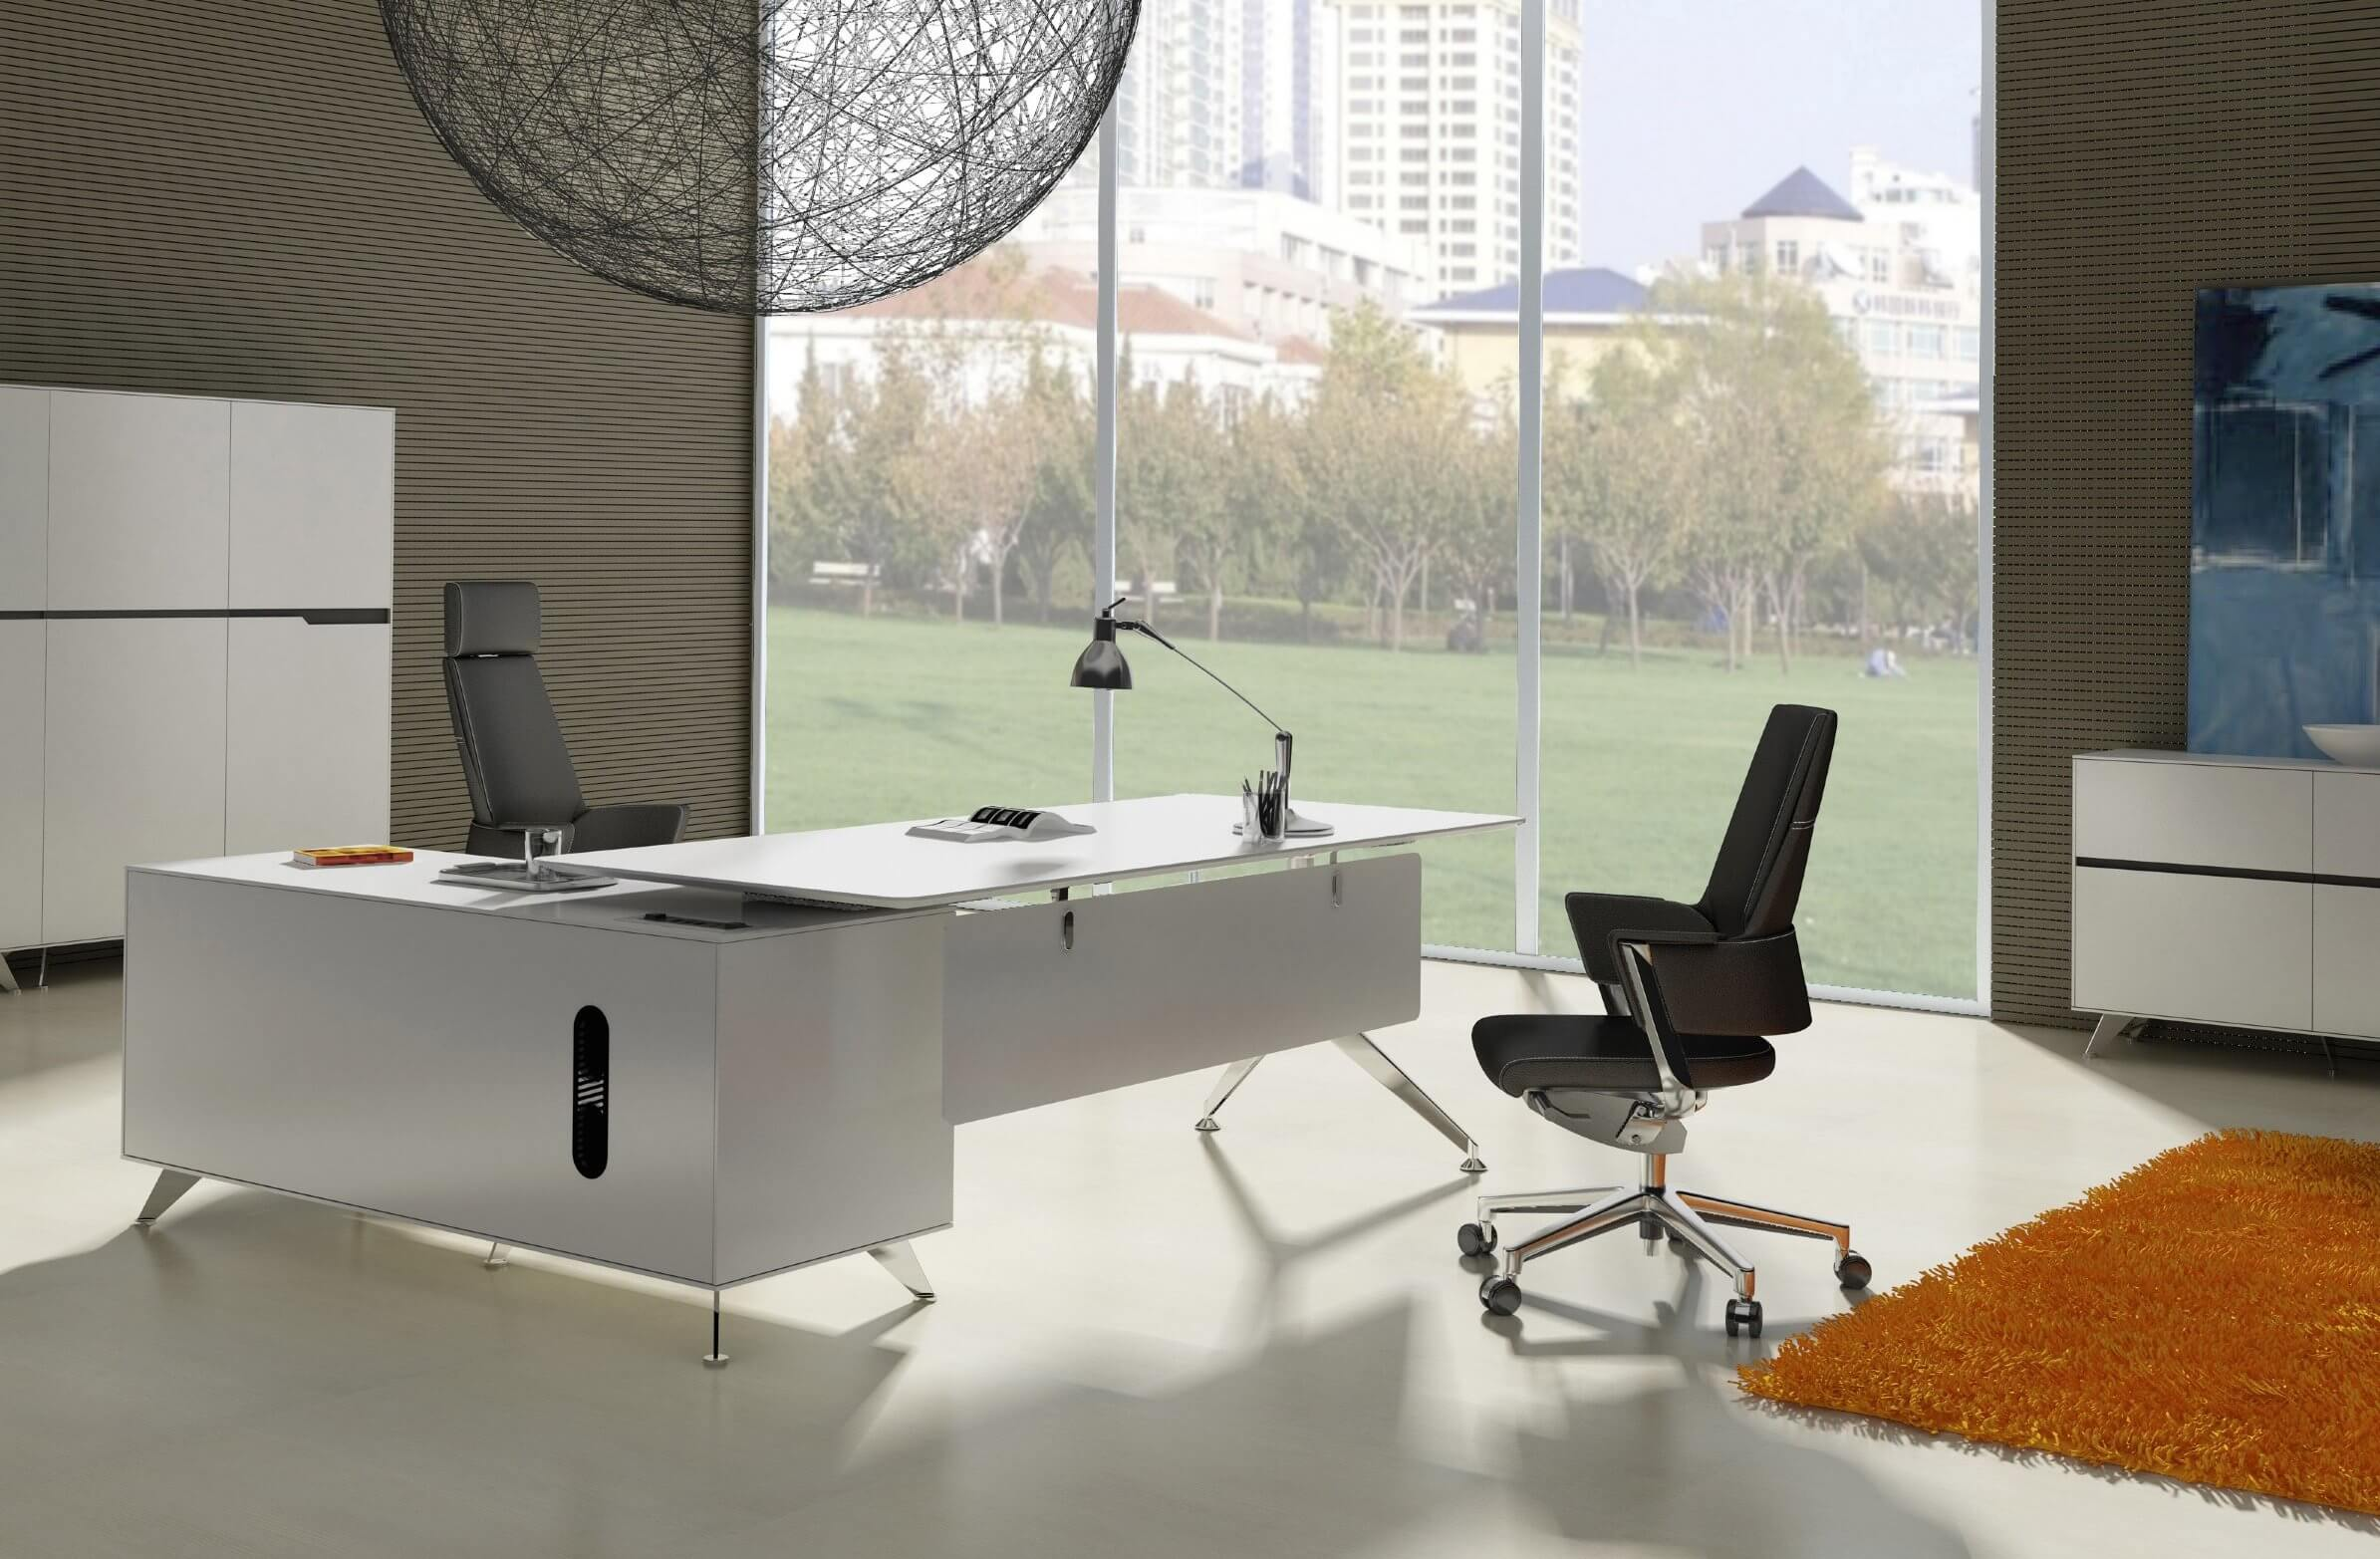 Oak Trendy White Desk Concepts Modern L-shaped white desk